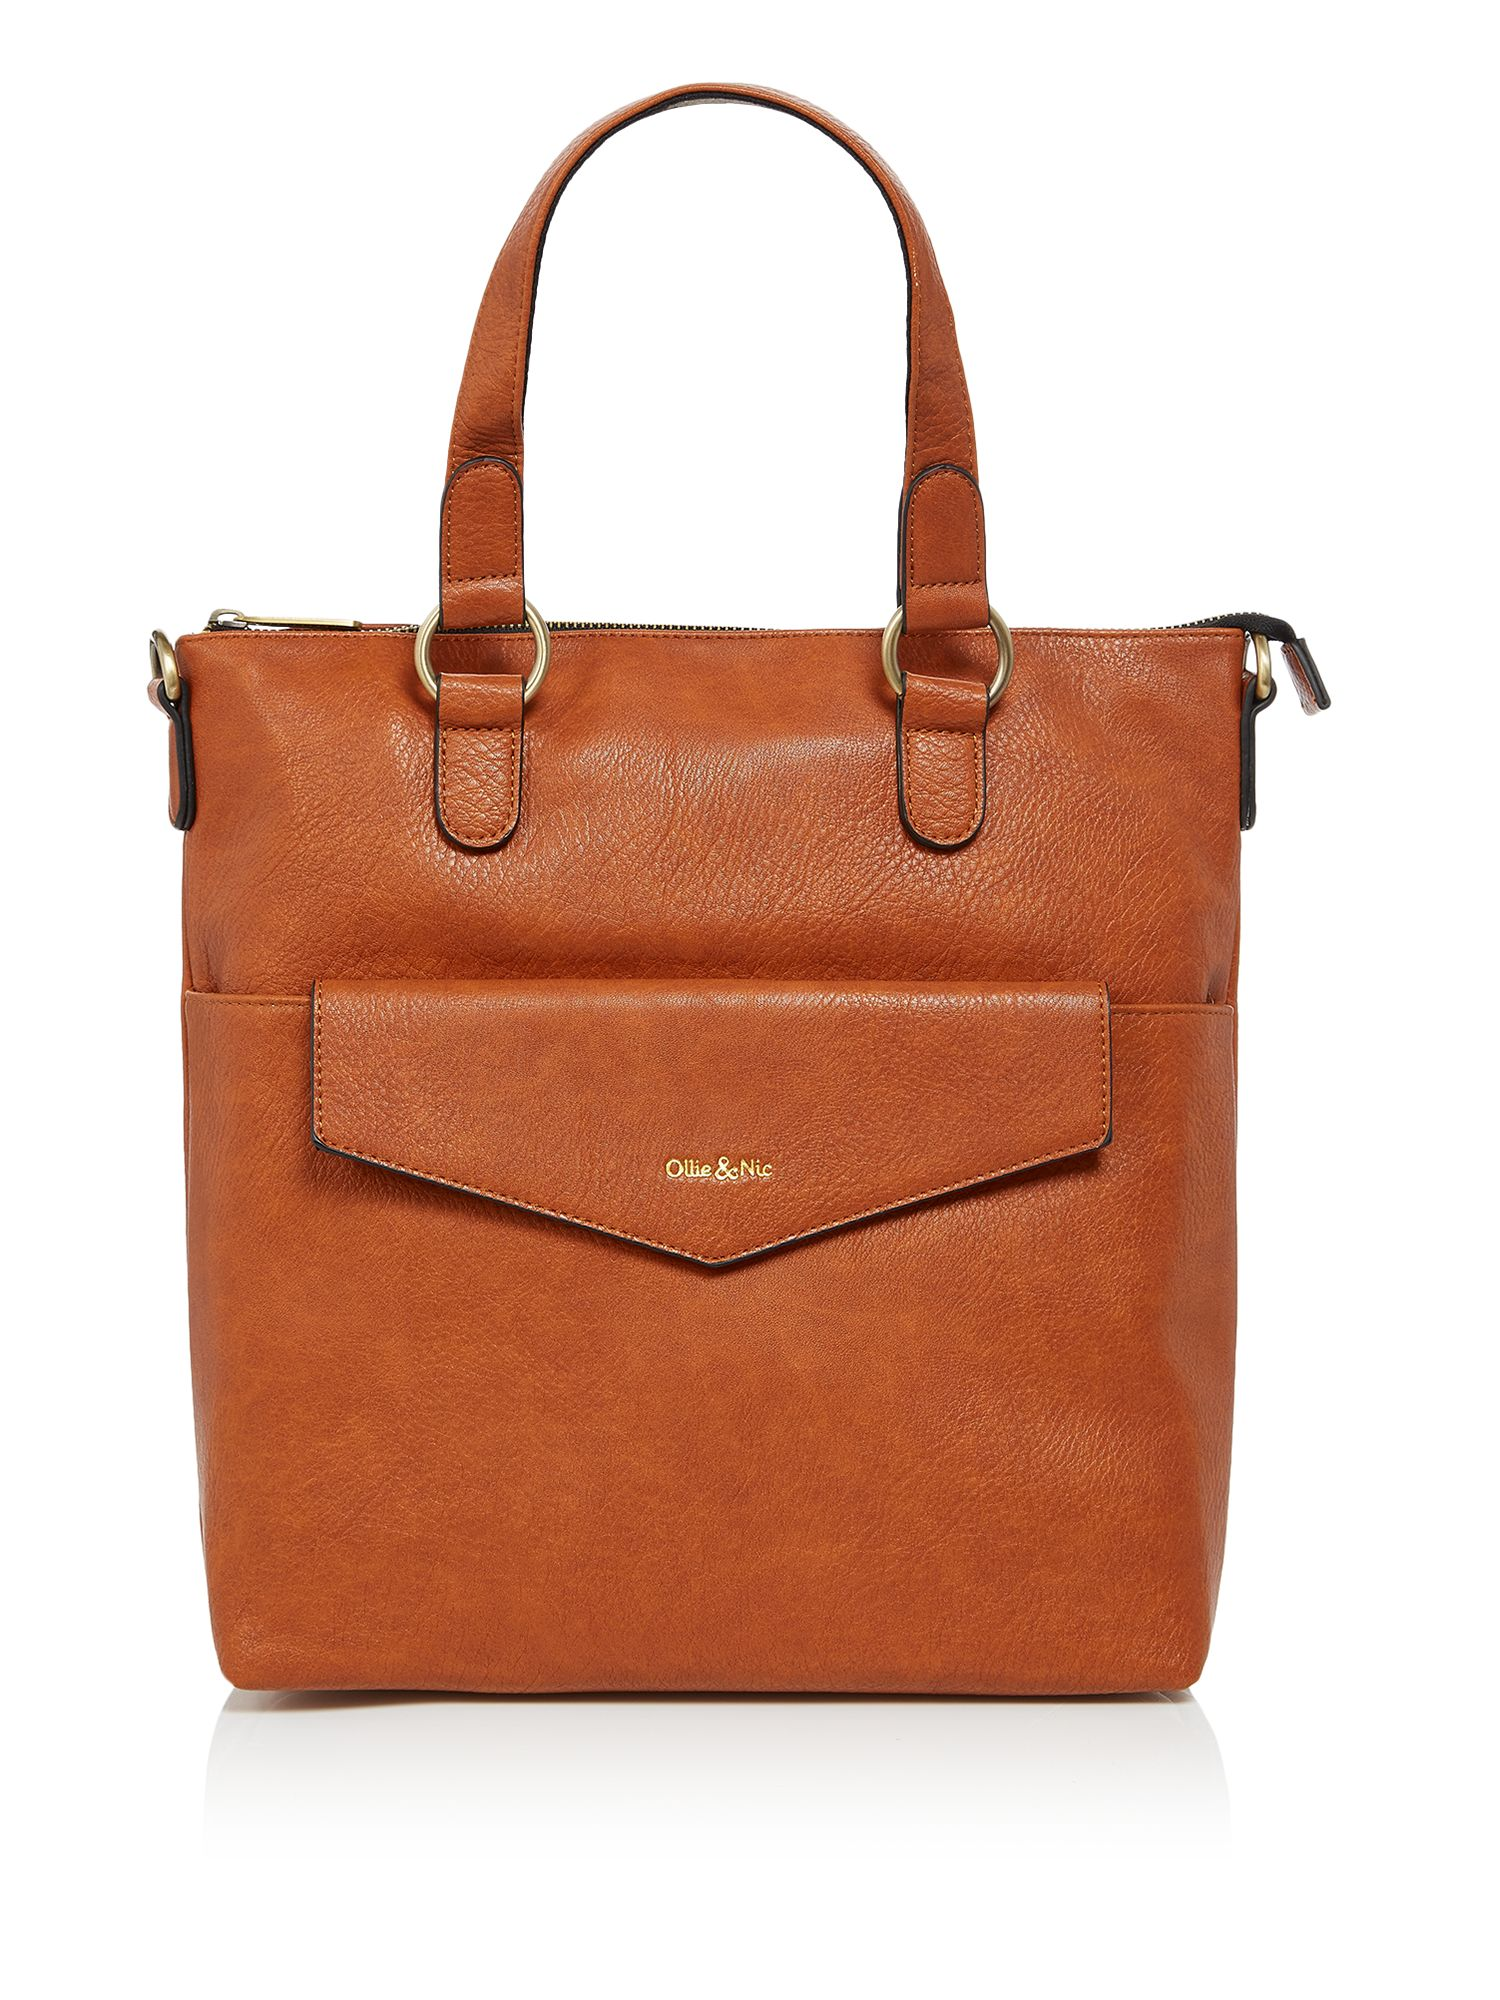 Ollie & Nic Eddy tote bag, Tan